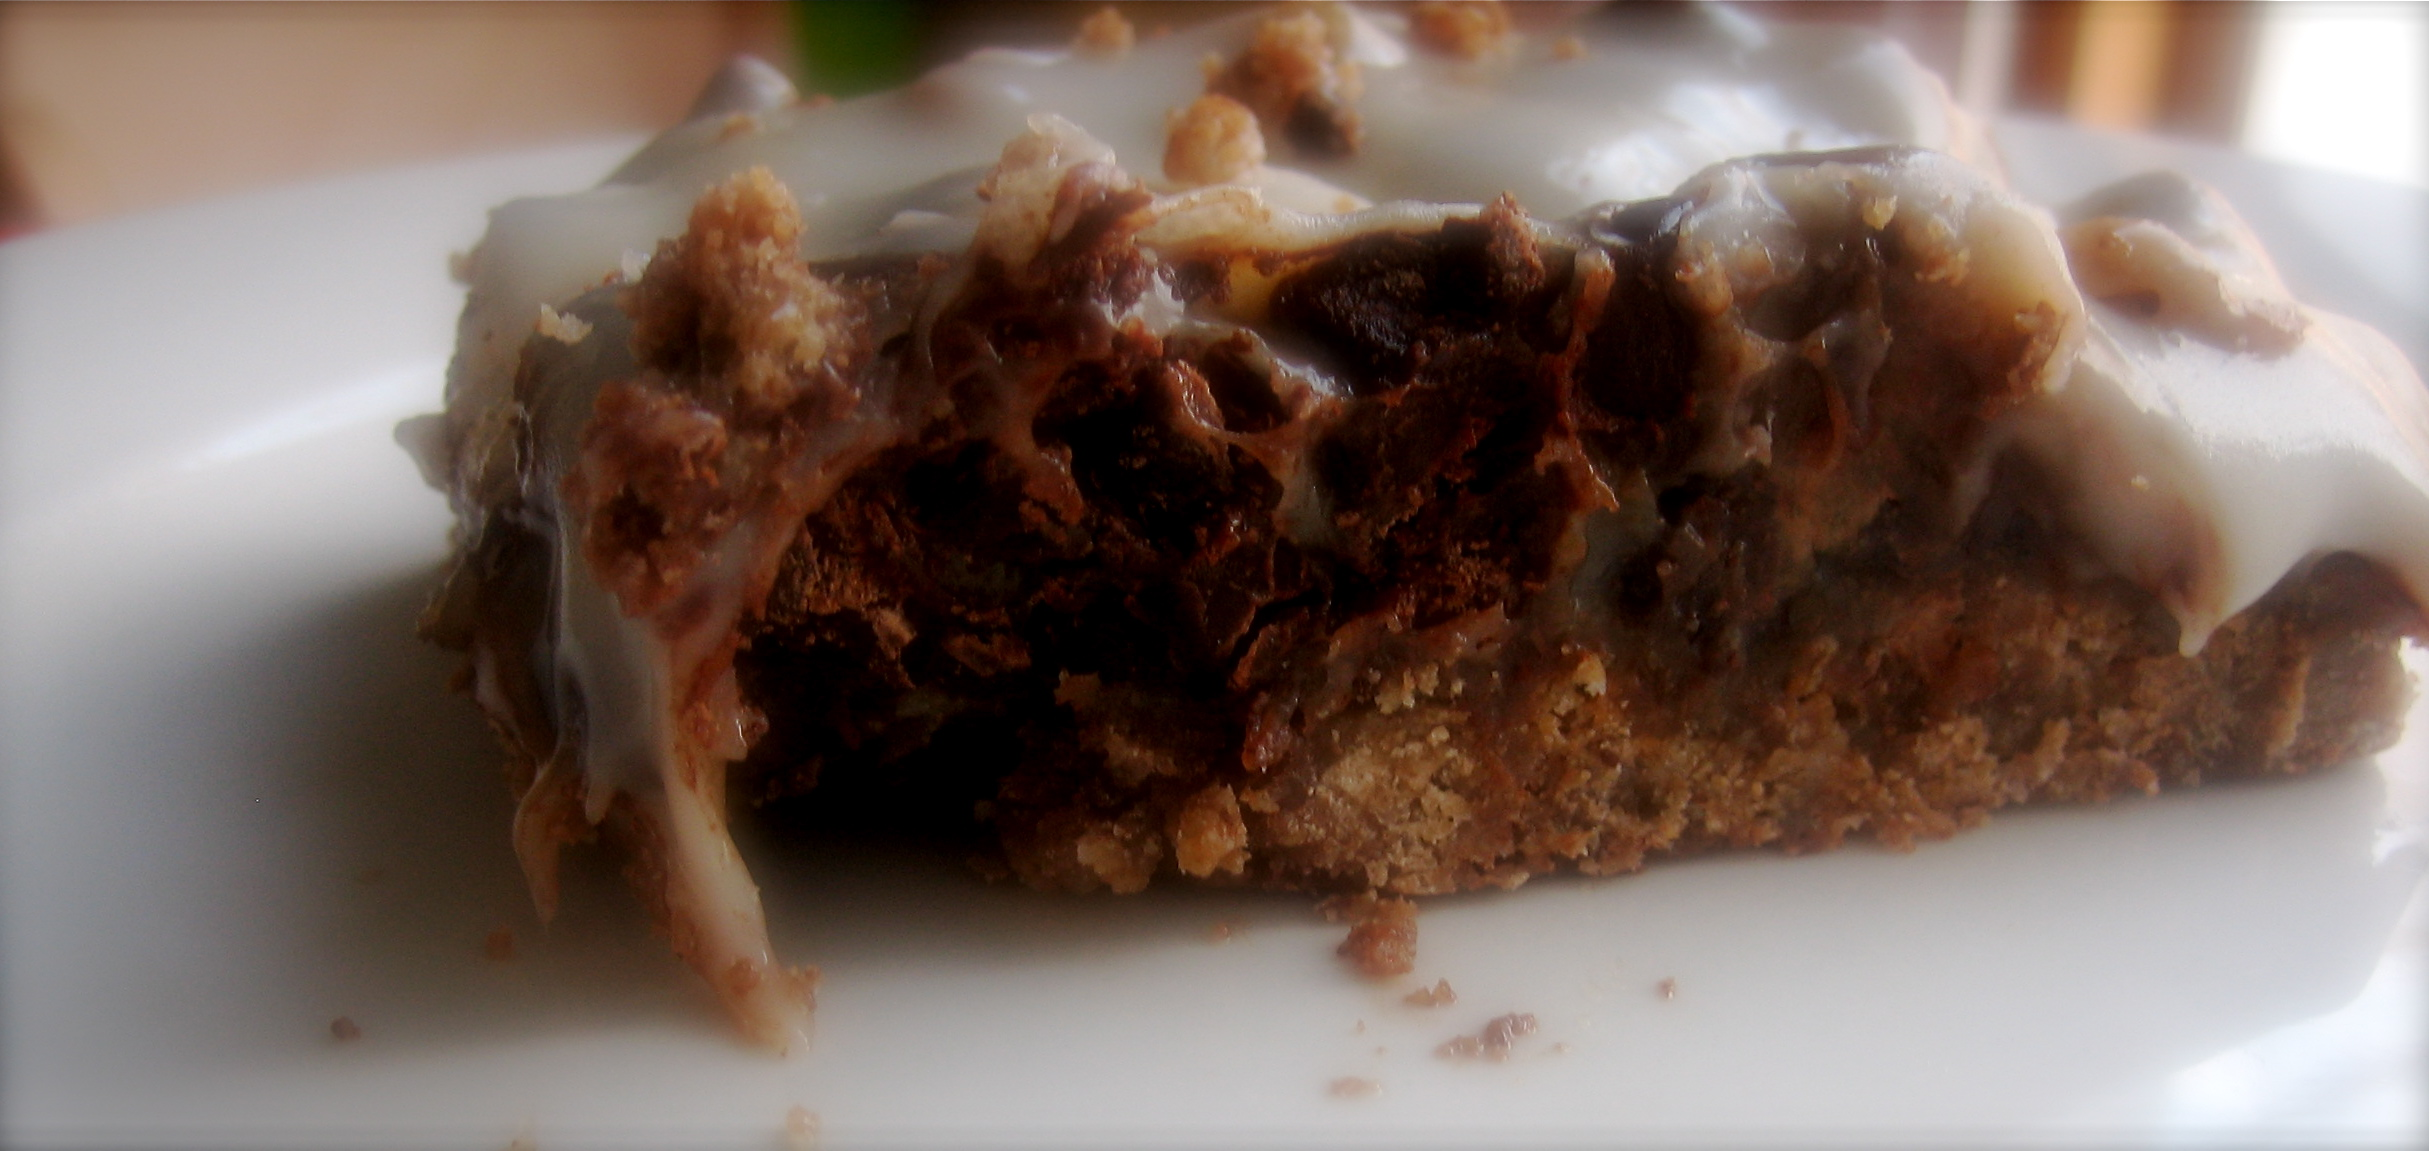 Recipe for Gluten Free, Egg-Free, Dairy-Free Ooey Gooey Bars